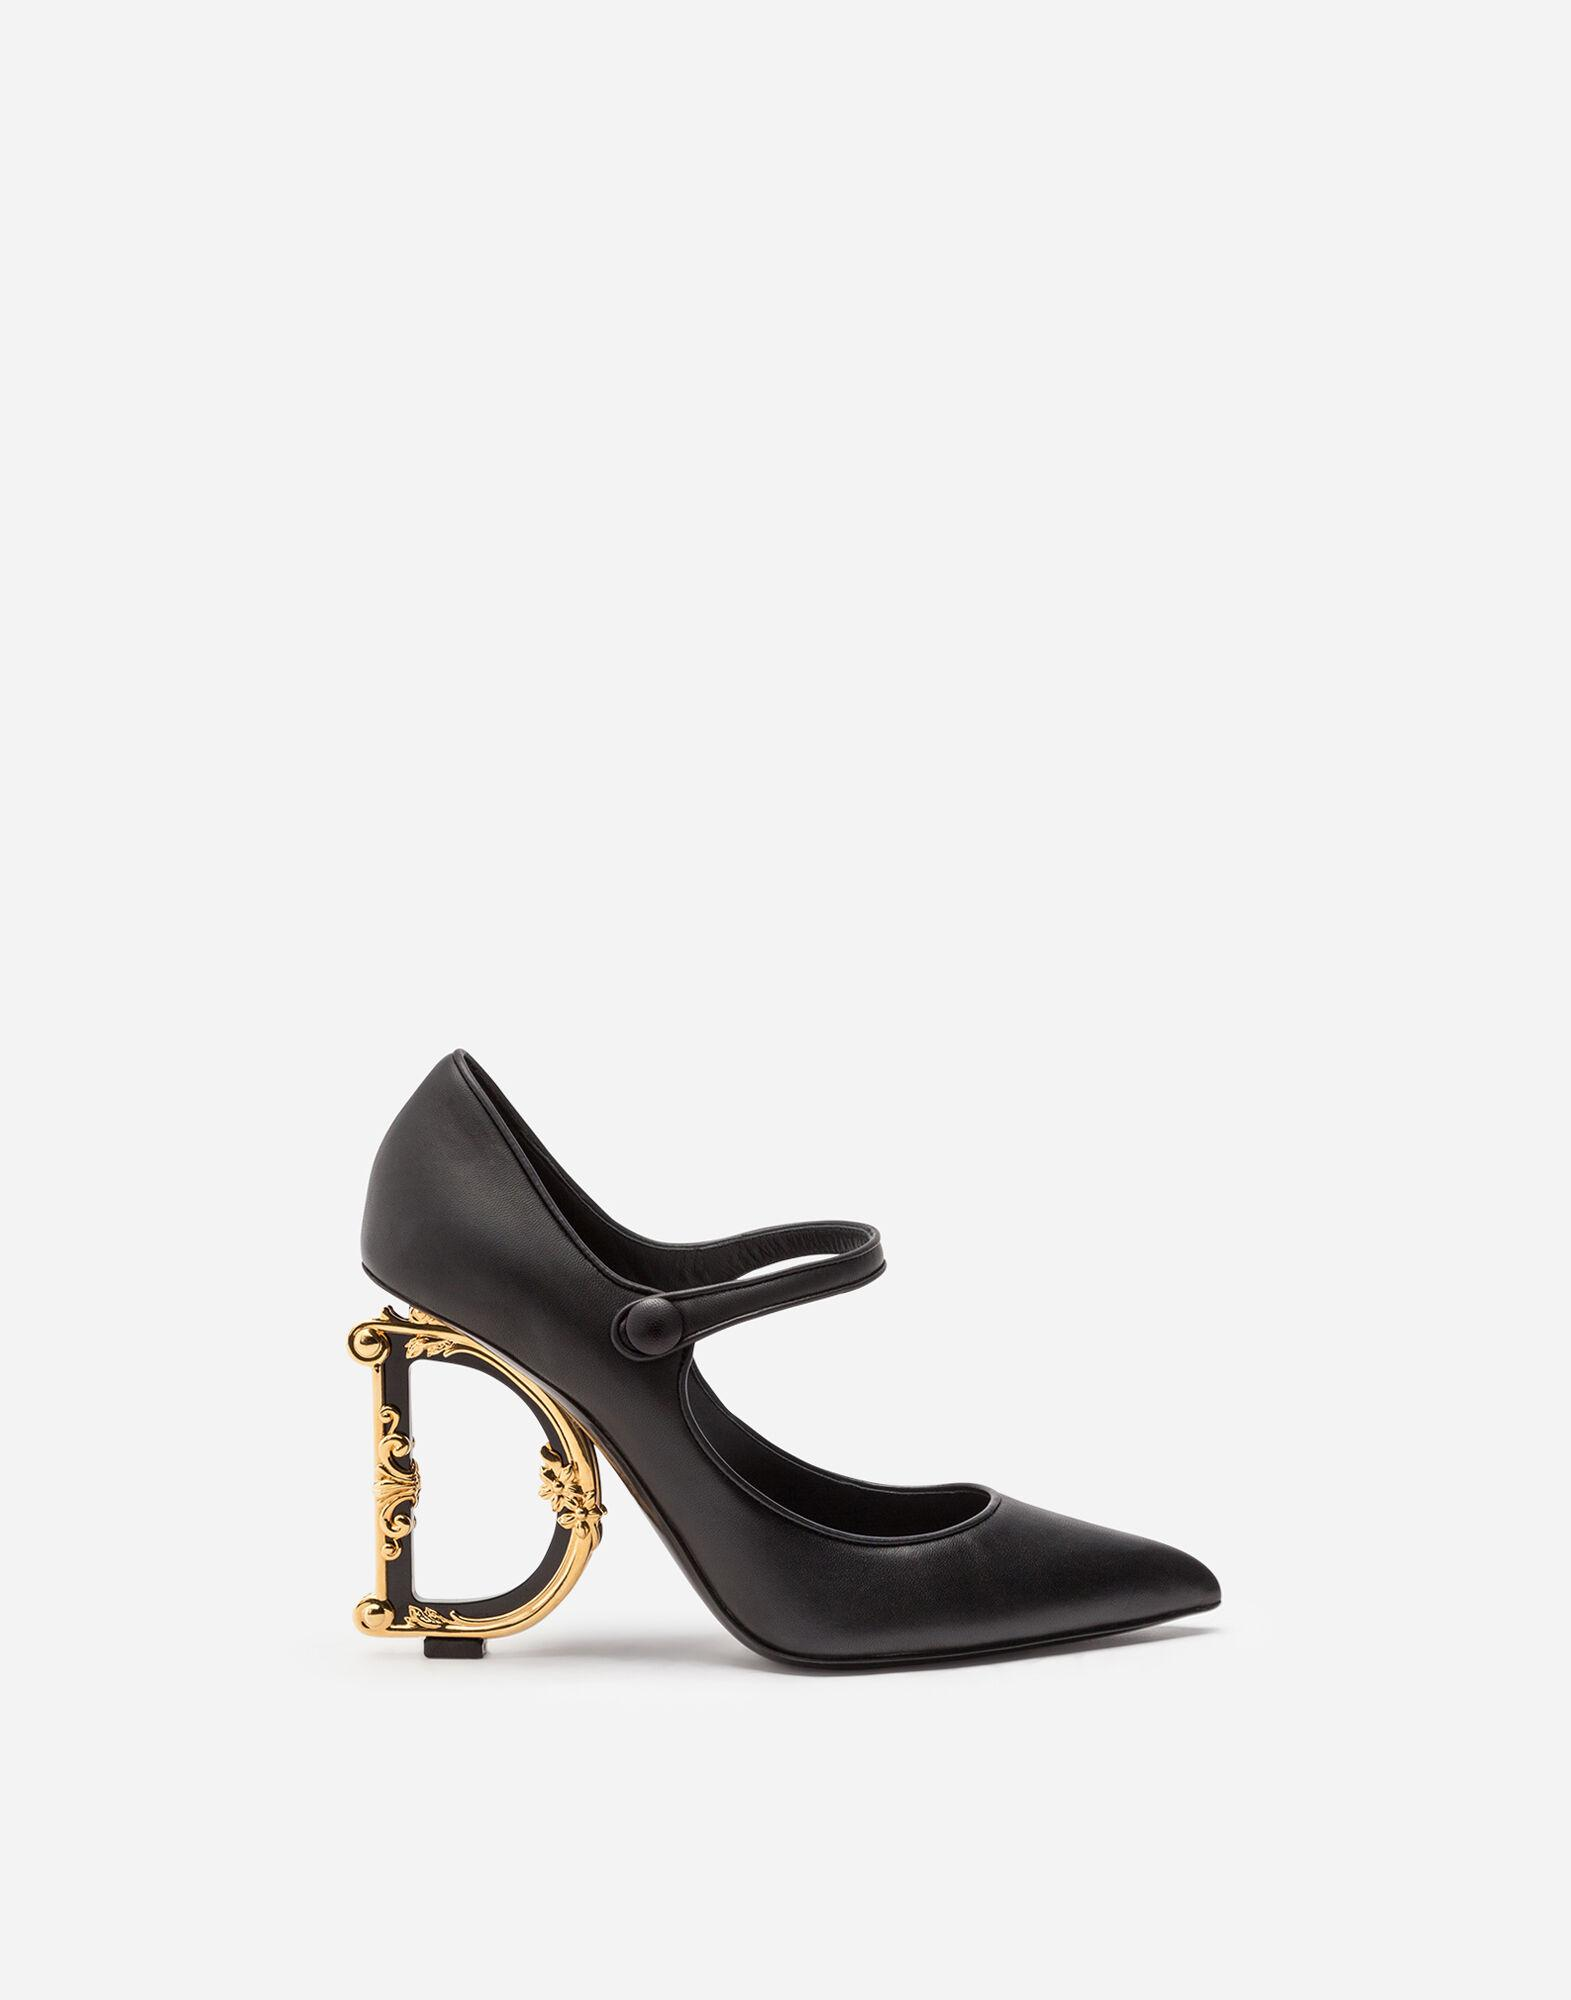 Nappa leather Mary Jane with baroque D&G heel